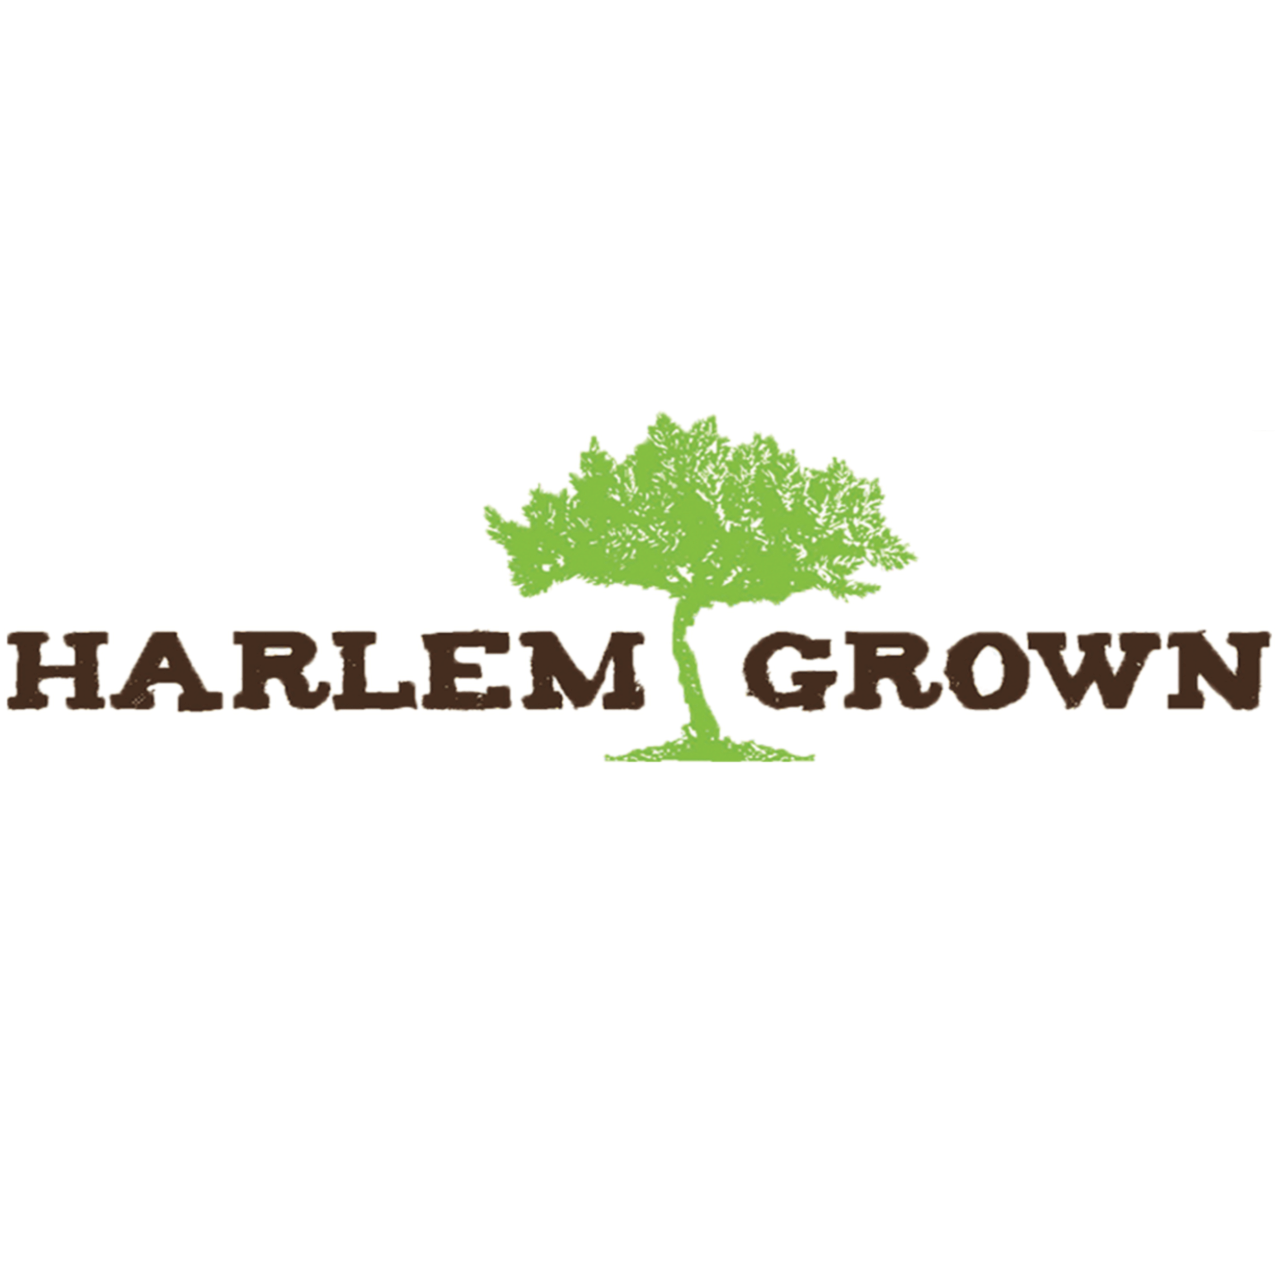 logo of Harlem Grown